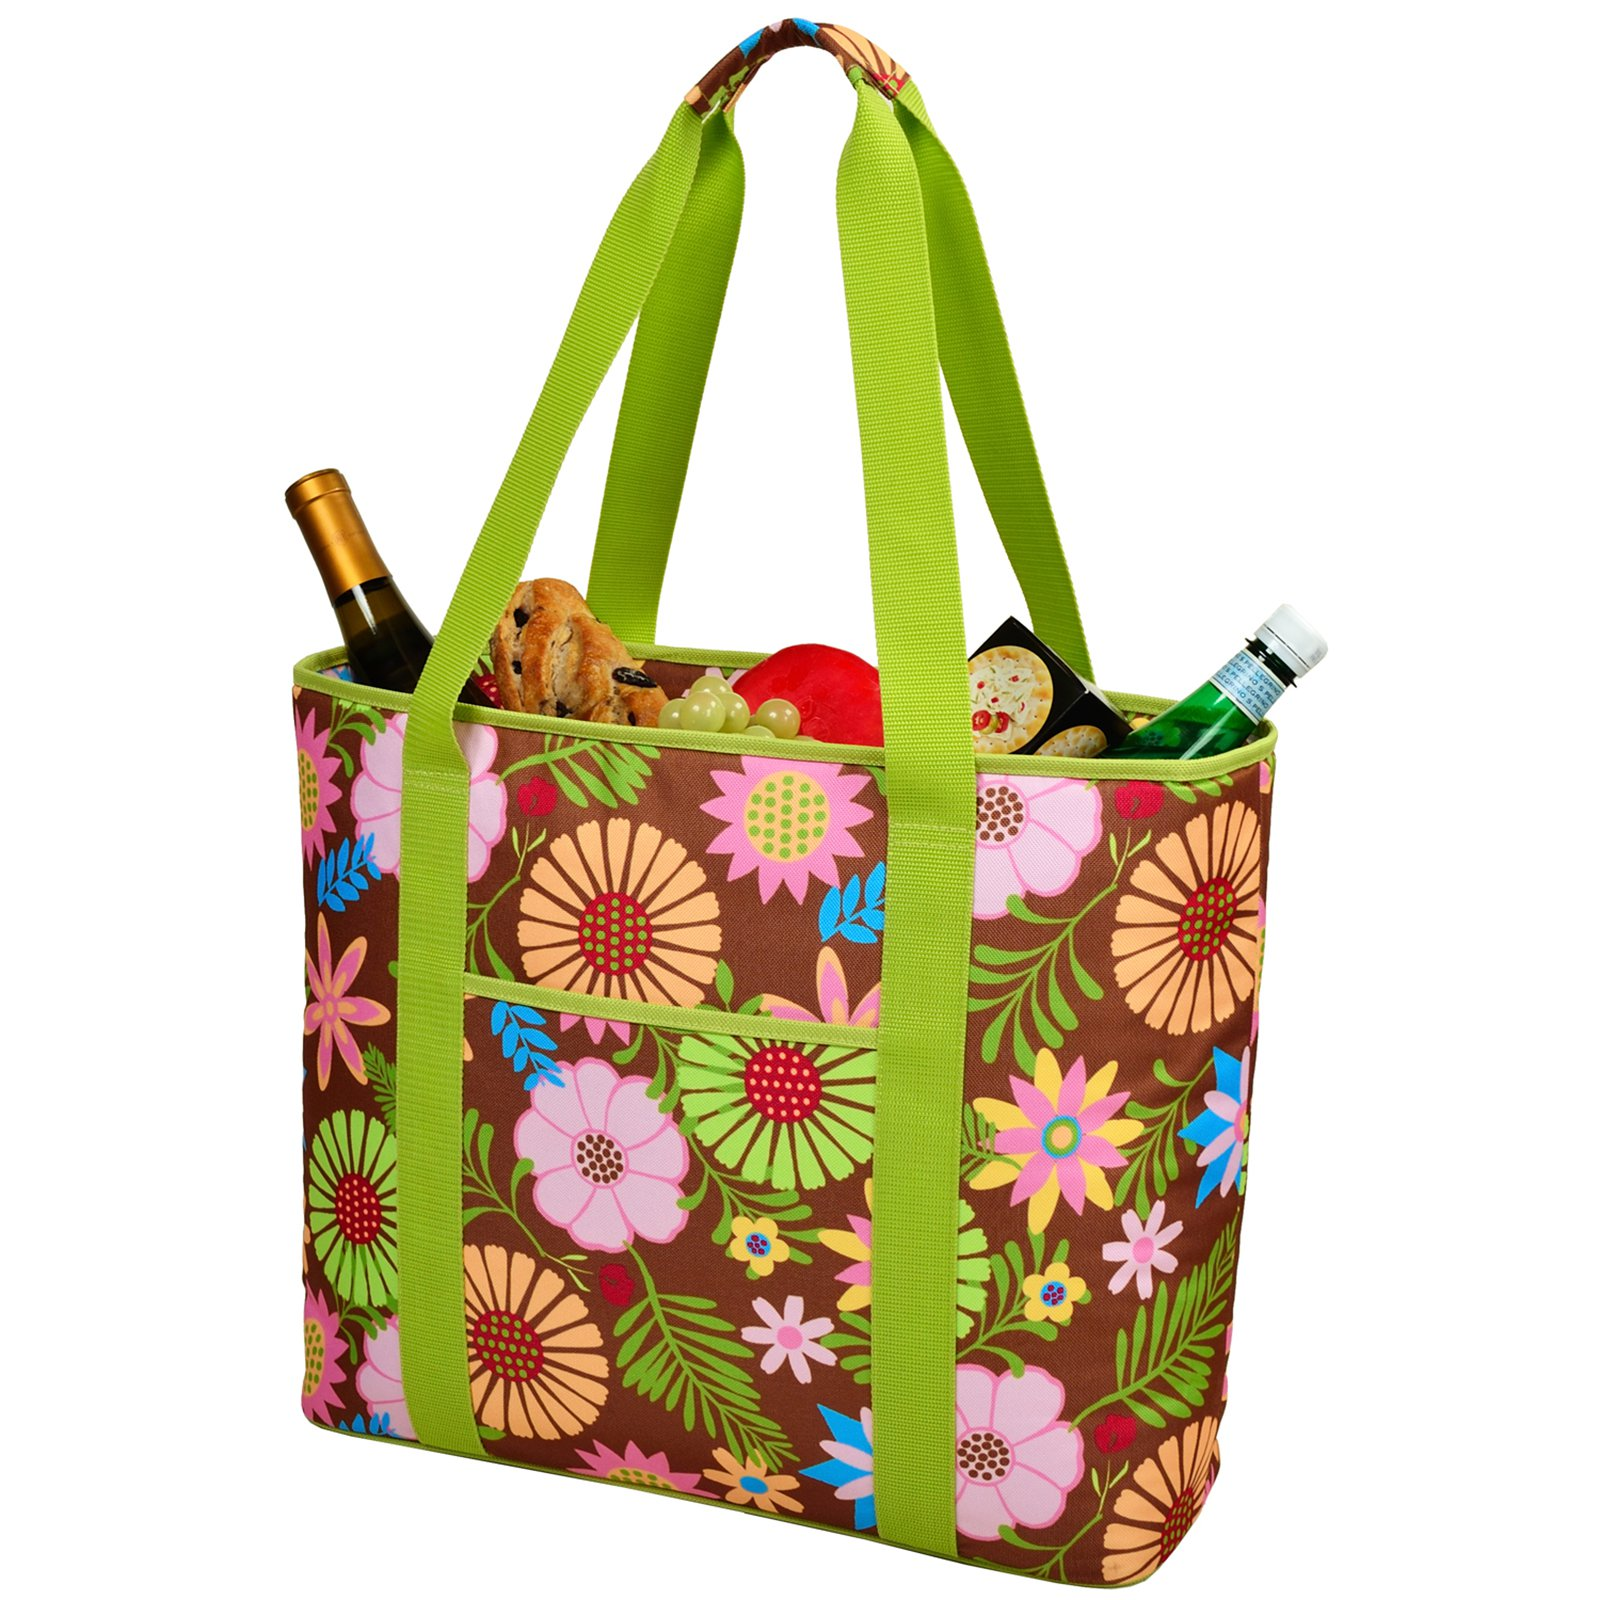 Picnic at Ascot Insulated Cooler Tote Bag - Floral